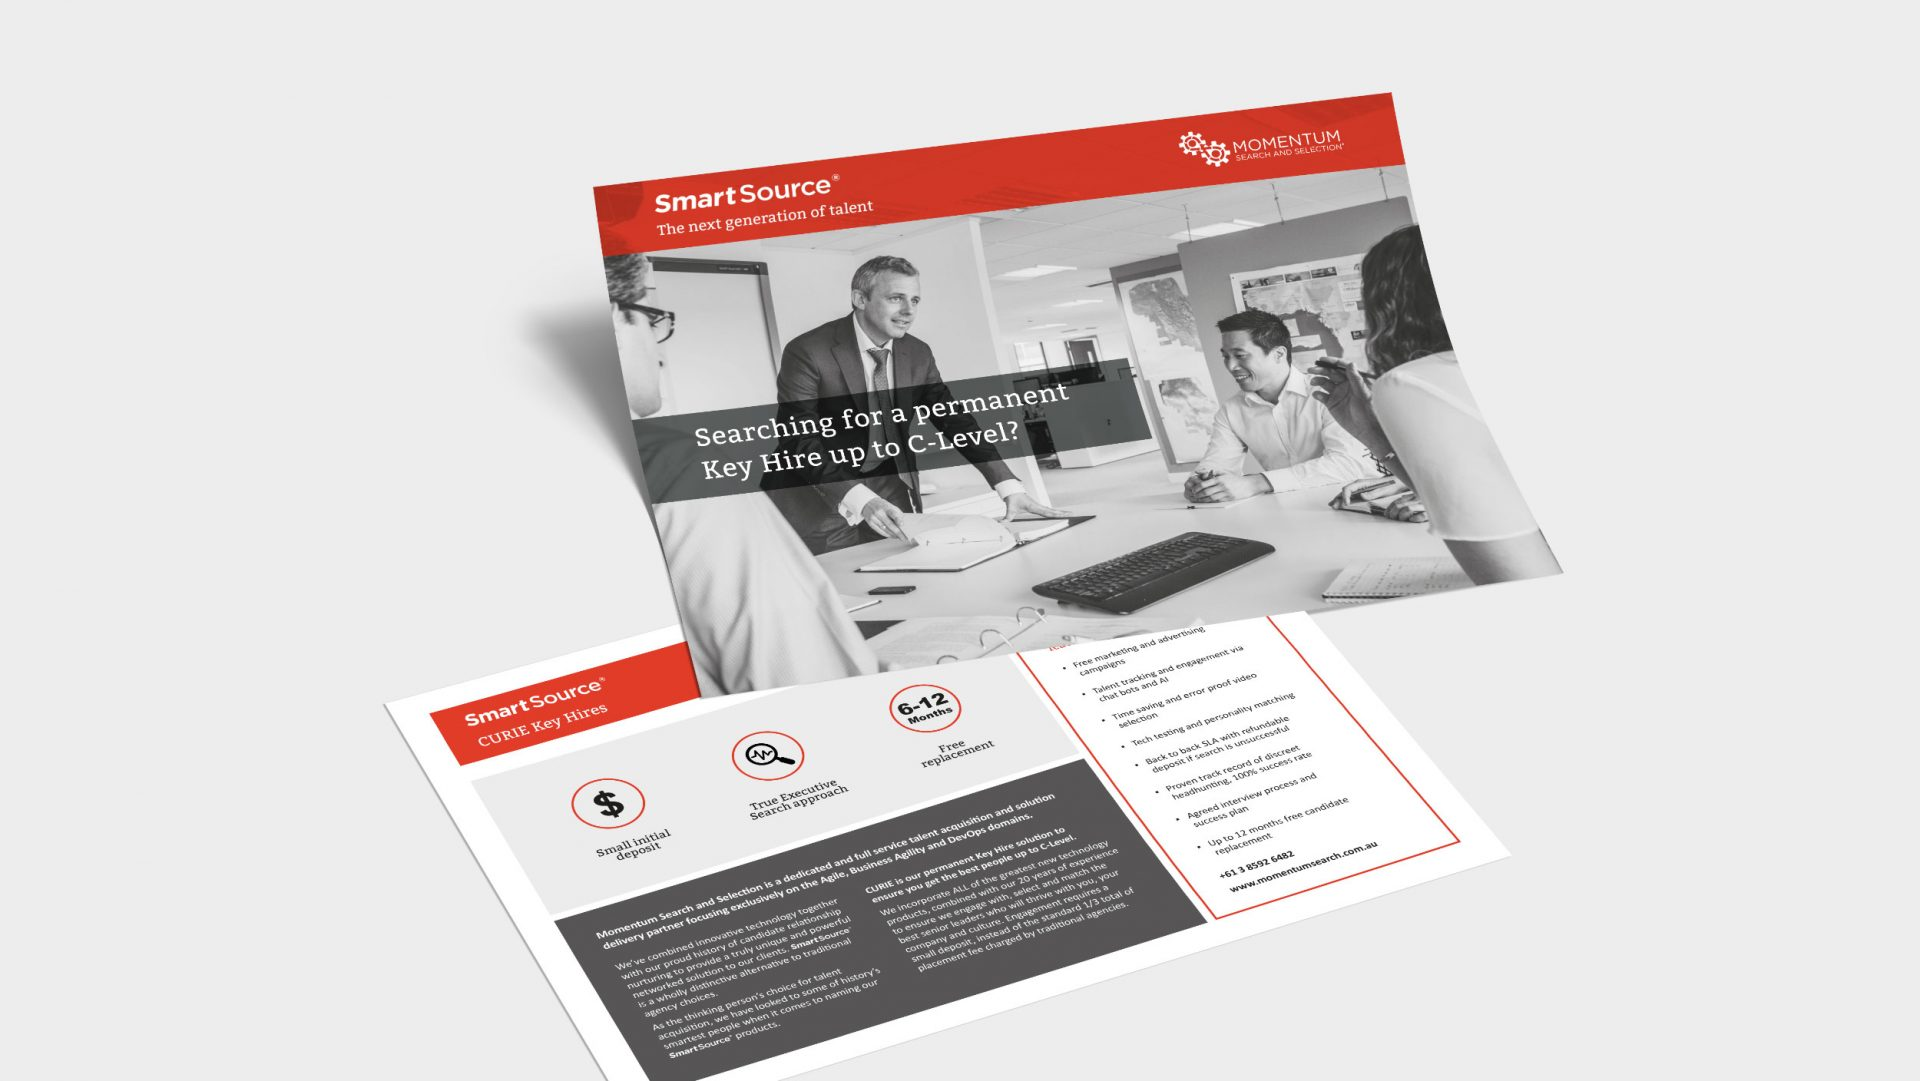 Momentum Search and Selection smart source brochures